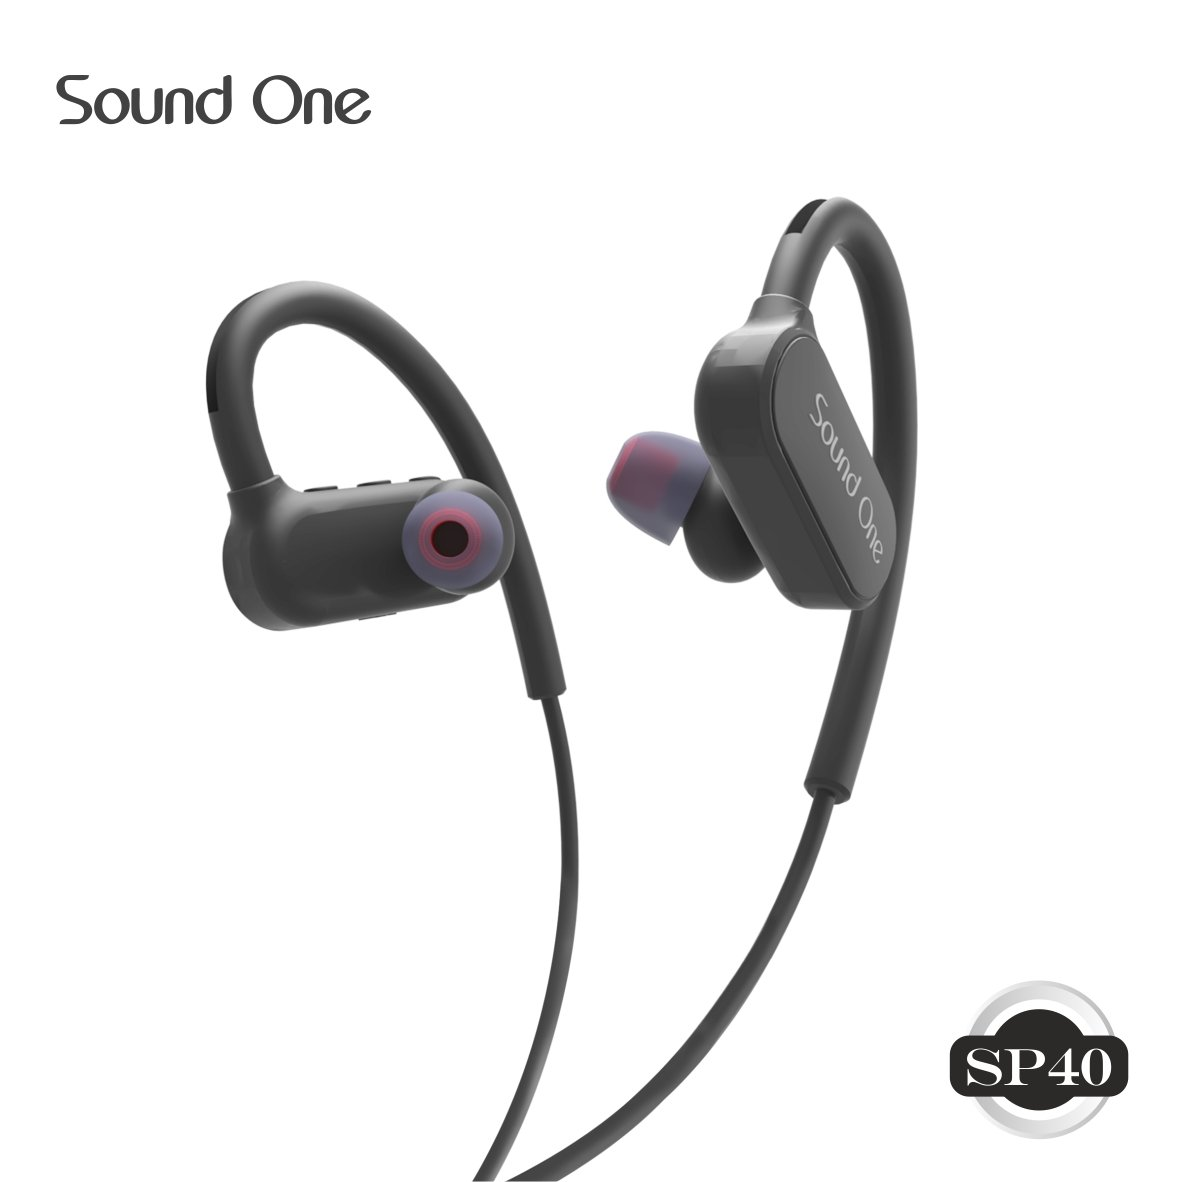 Sound One SP-40 Sports Bluetooth Earphones with Mic & Carry Case